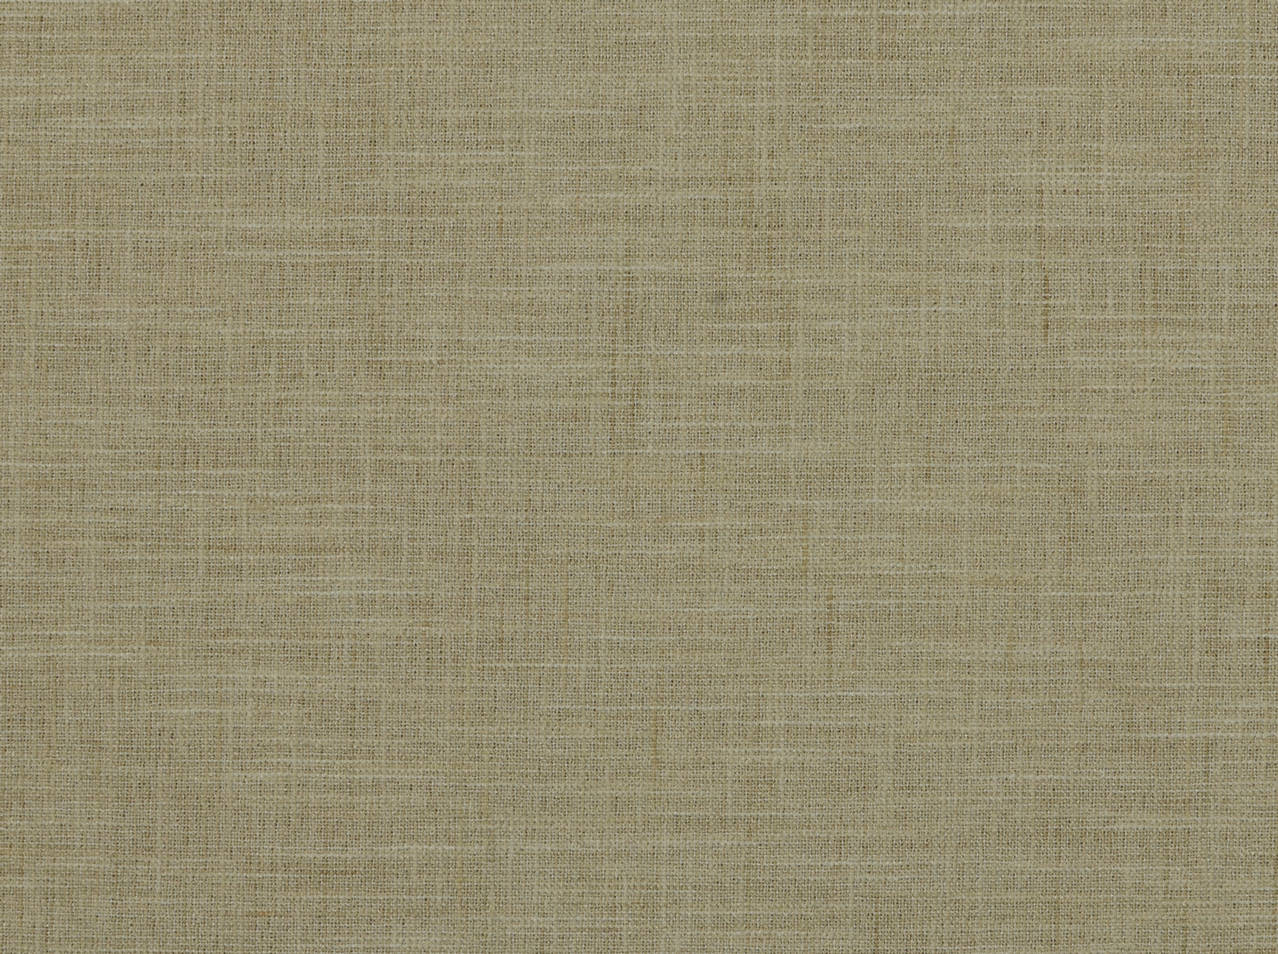 Covington Solids%20and%20Textures Ennis